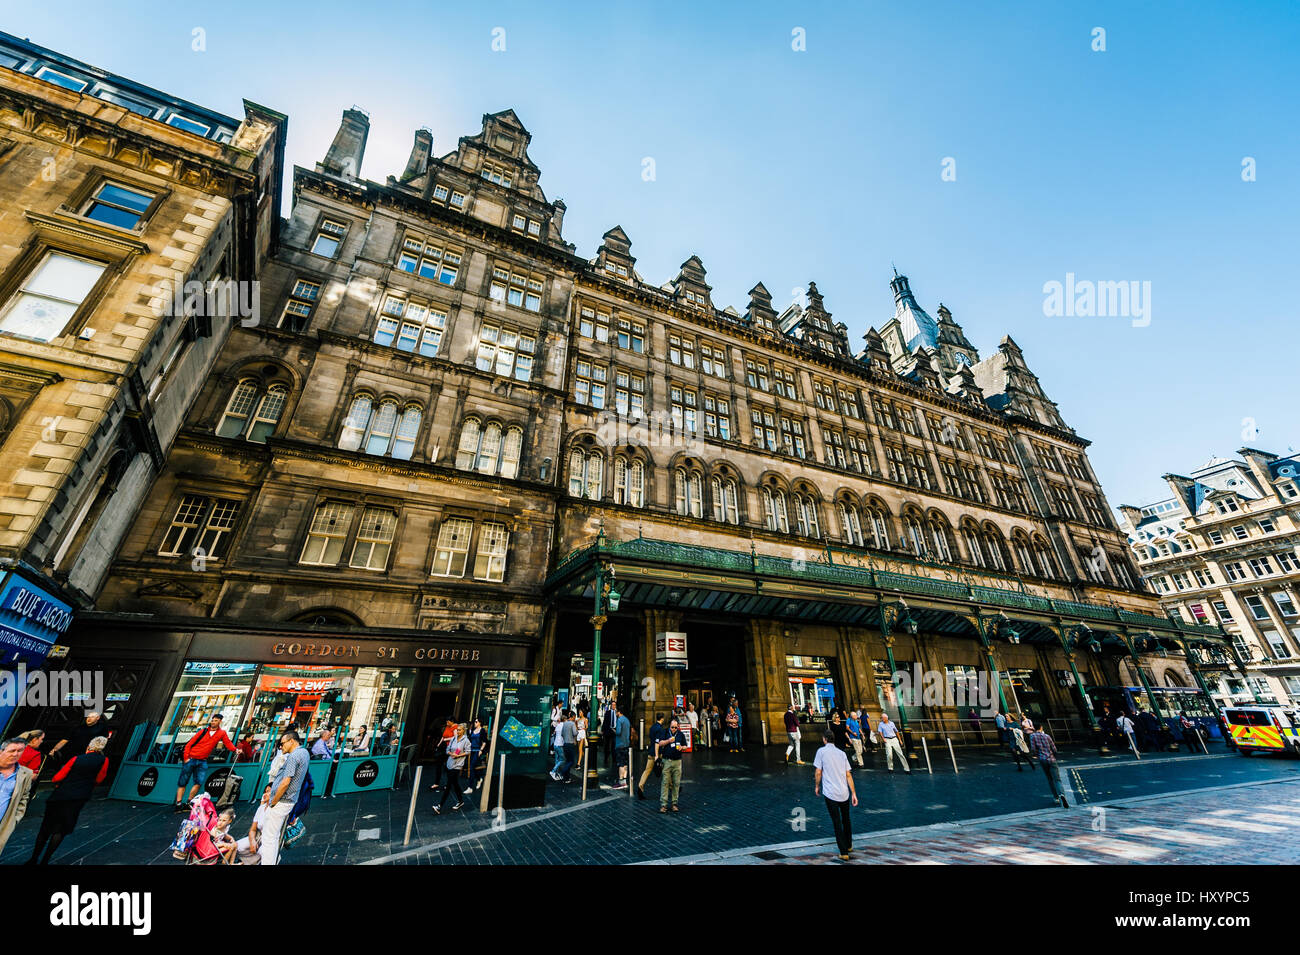 Commuters Outside Glasgow Central Station on Gordon Street in Glasgow - Stock Image